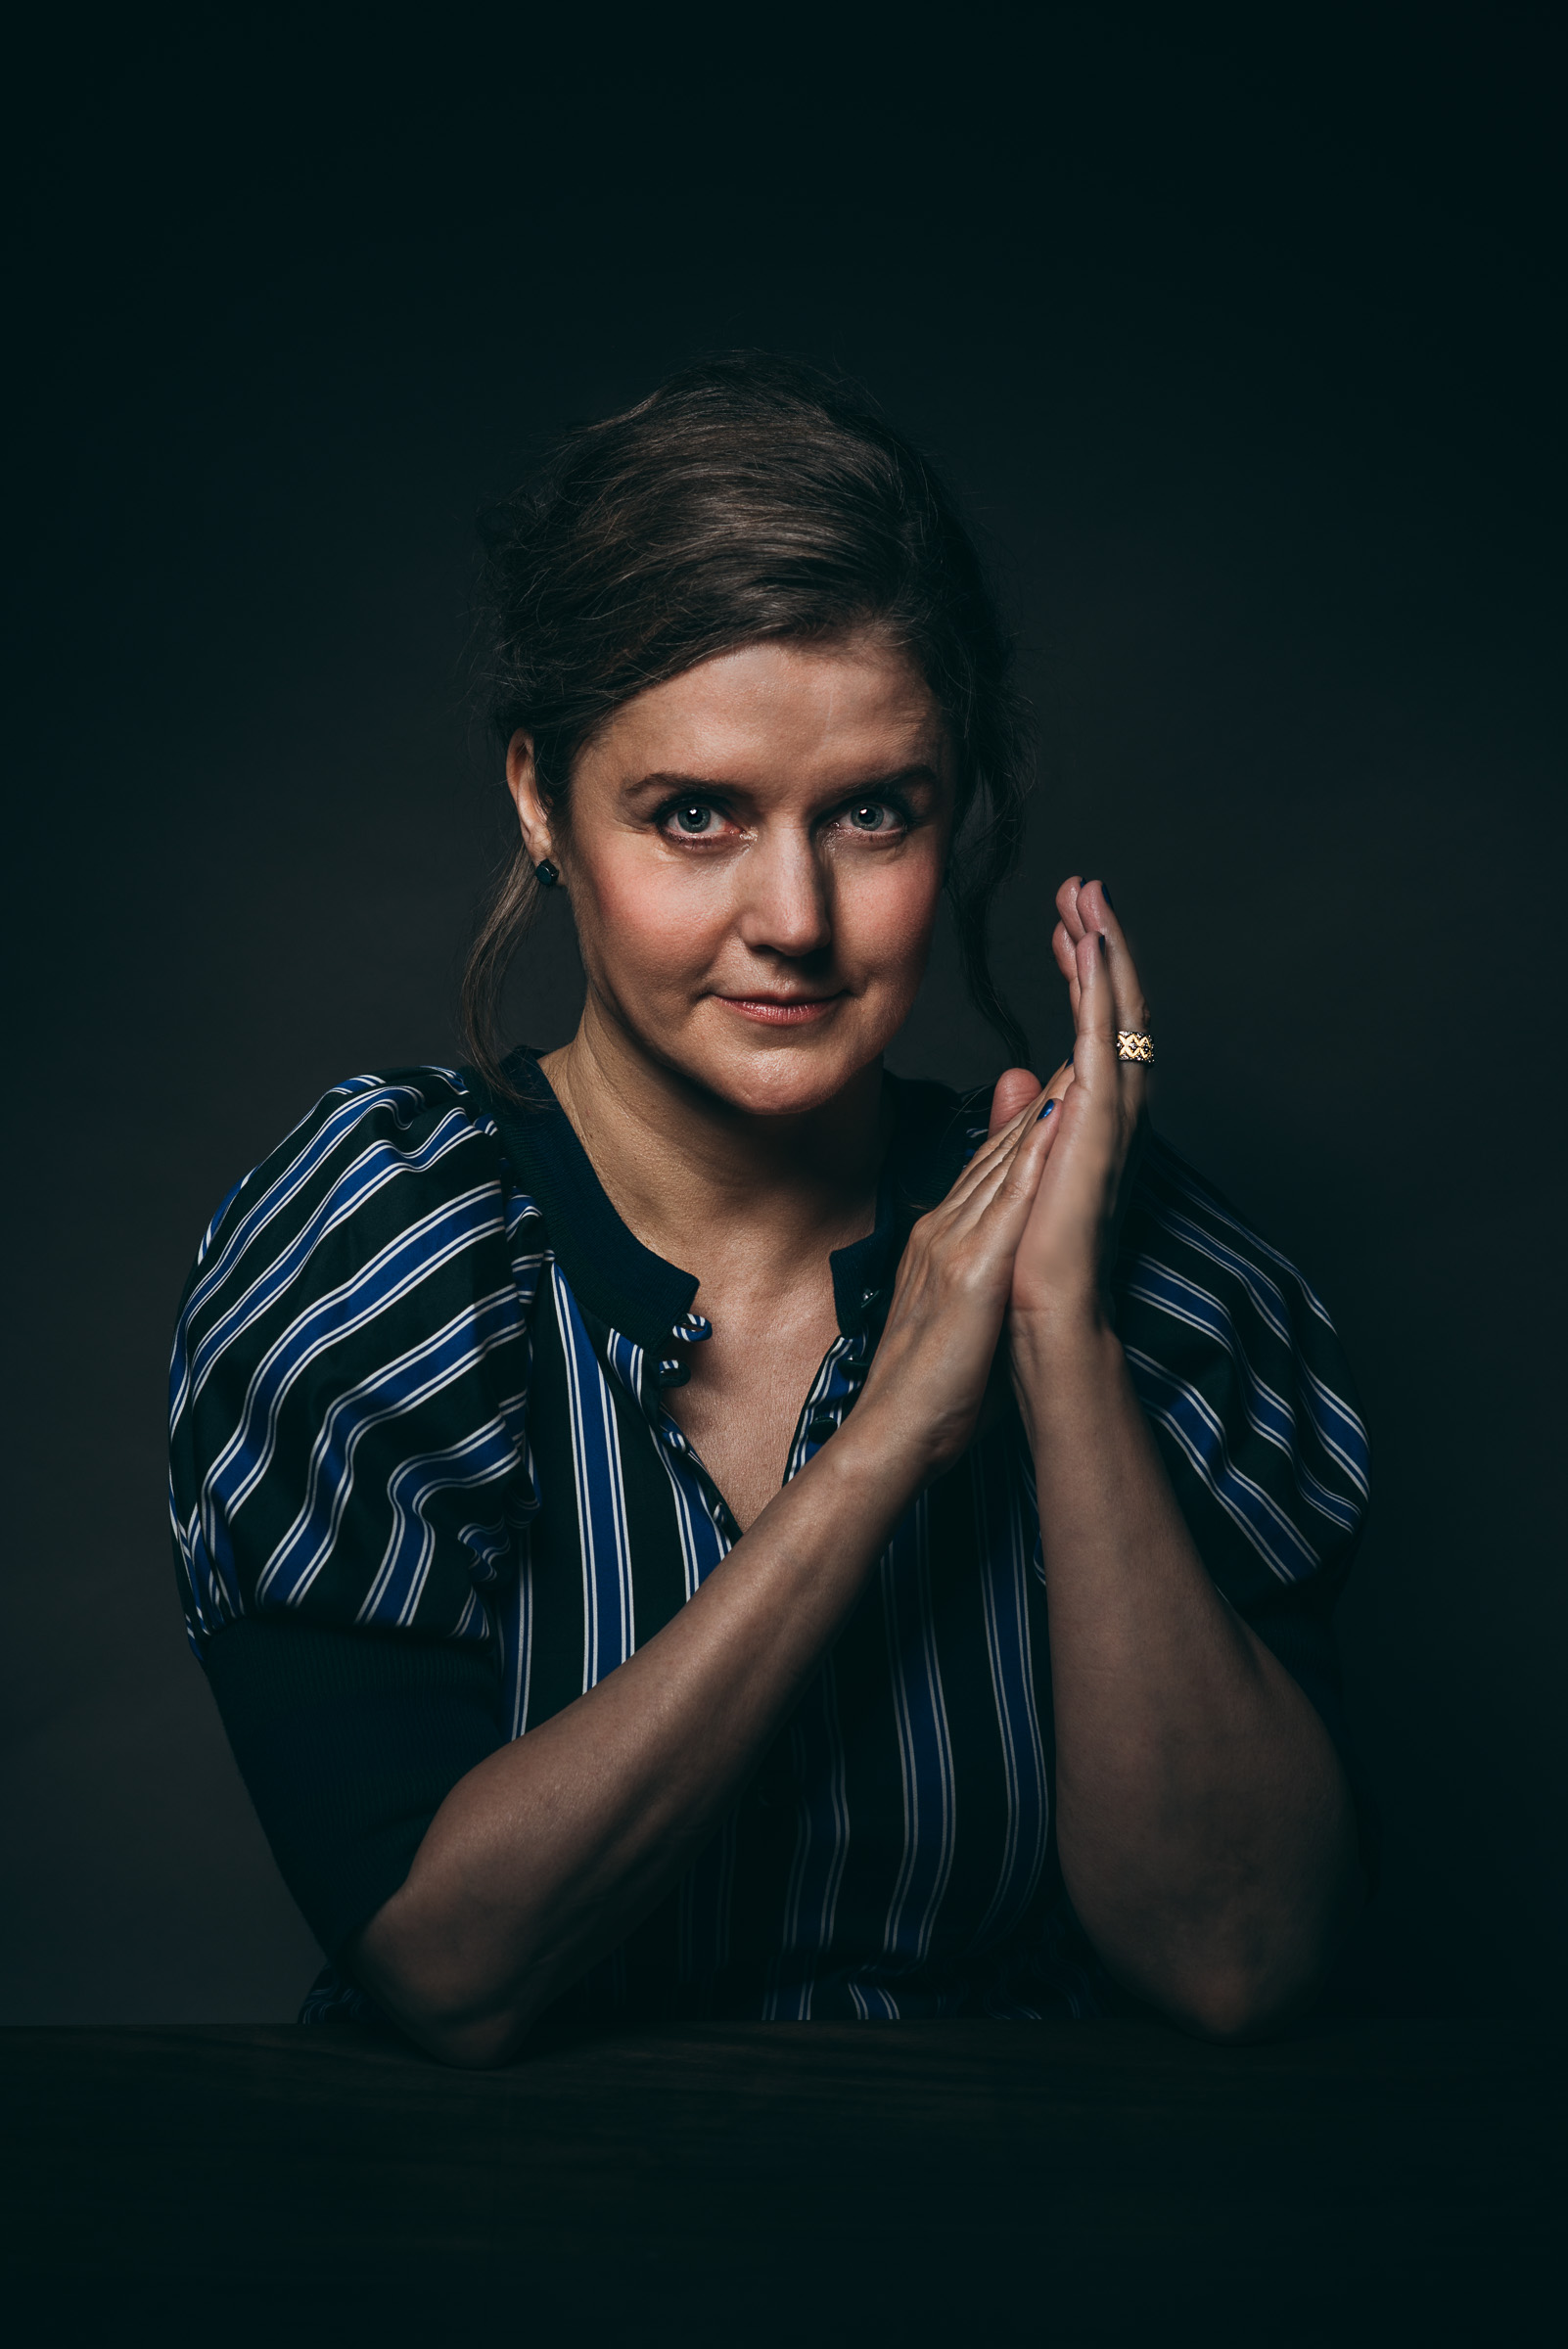 Portrait: Christine McCarey, equal rights advocate, founder of DEI Impact